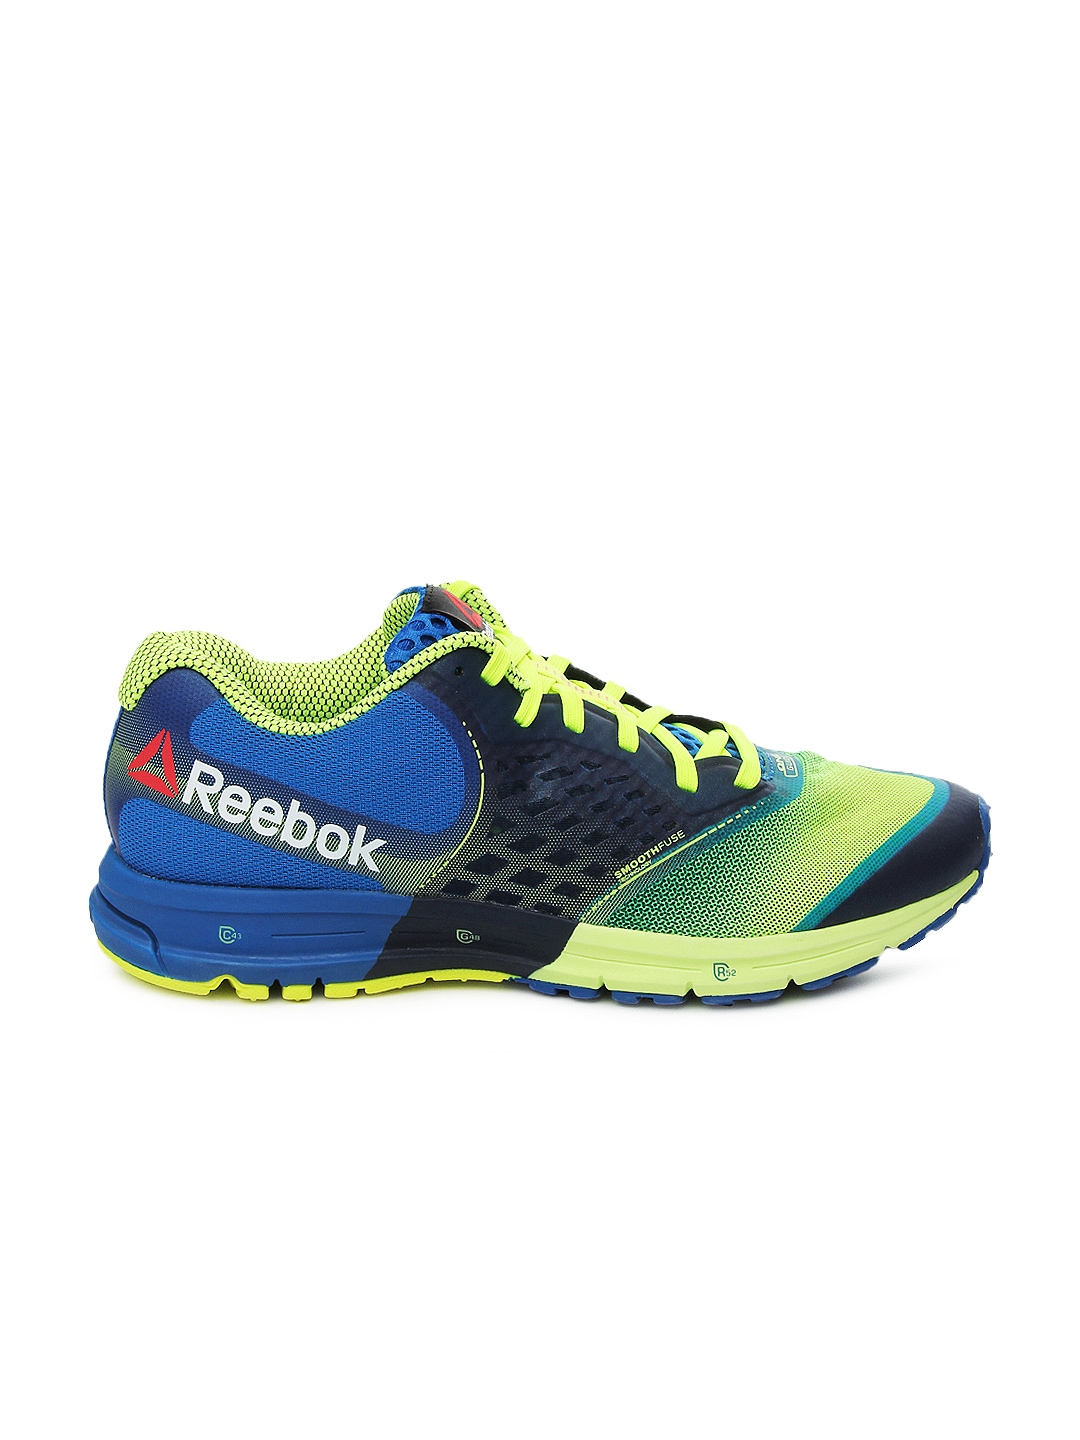 reebok shoes marketing objective Reebok marketing analysis  commercials or direct response marketingthe main objective in an infomercial is to create an impulse purchase, so that the consumer .